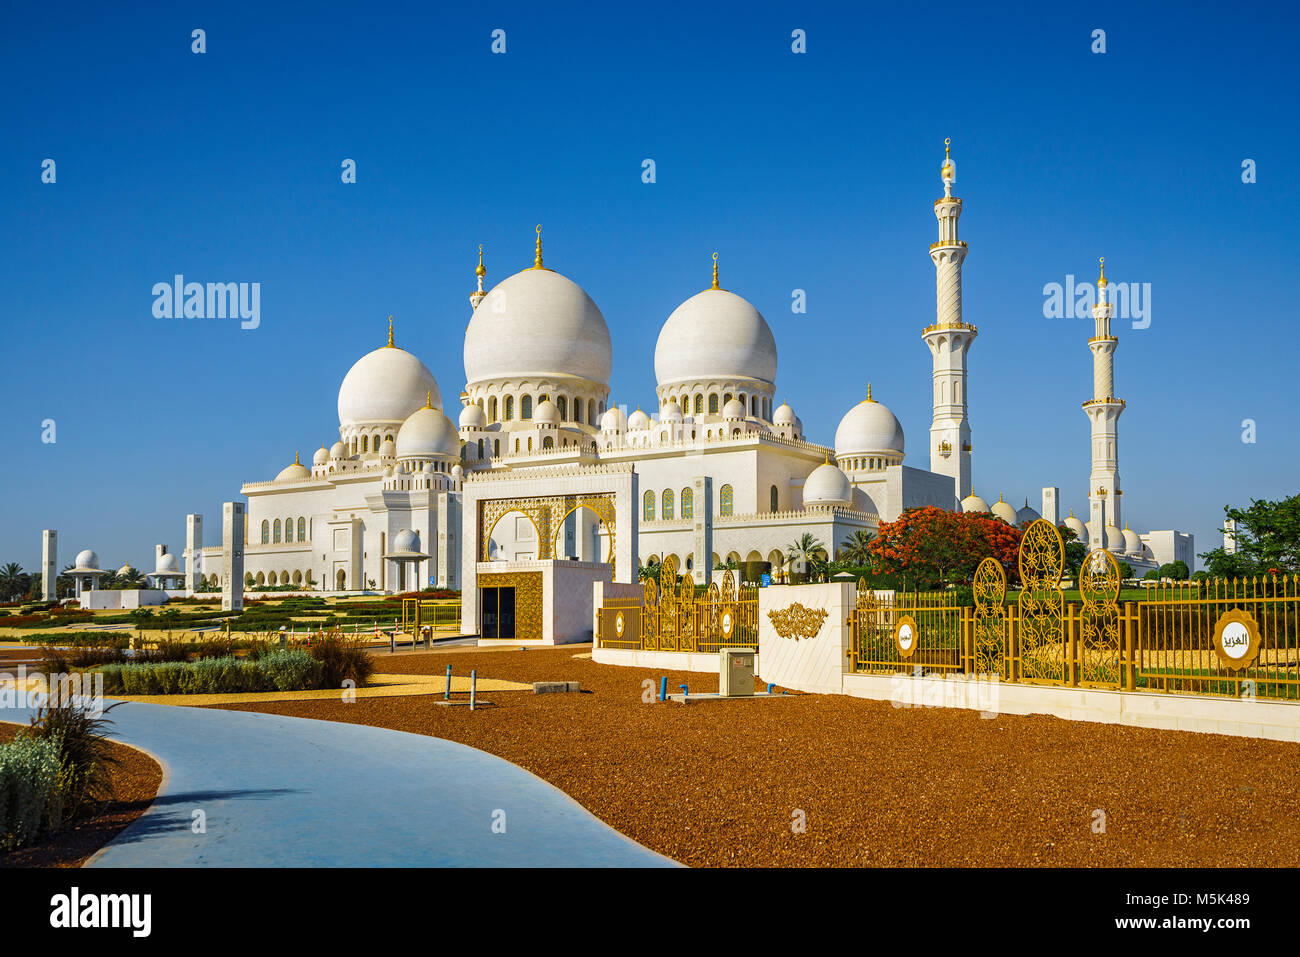 The imposing Sheikh Zayed Grand Mosque in Abu Dhabi - Stock Image